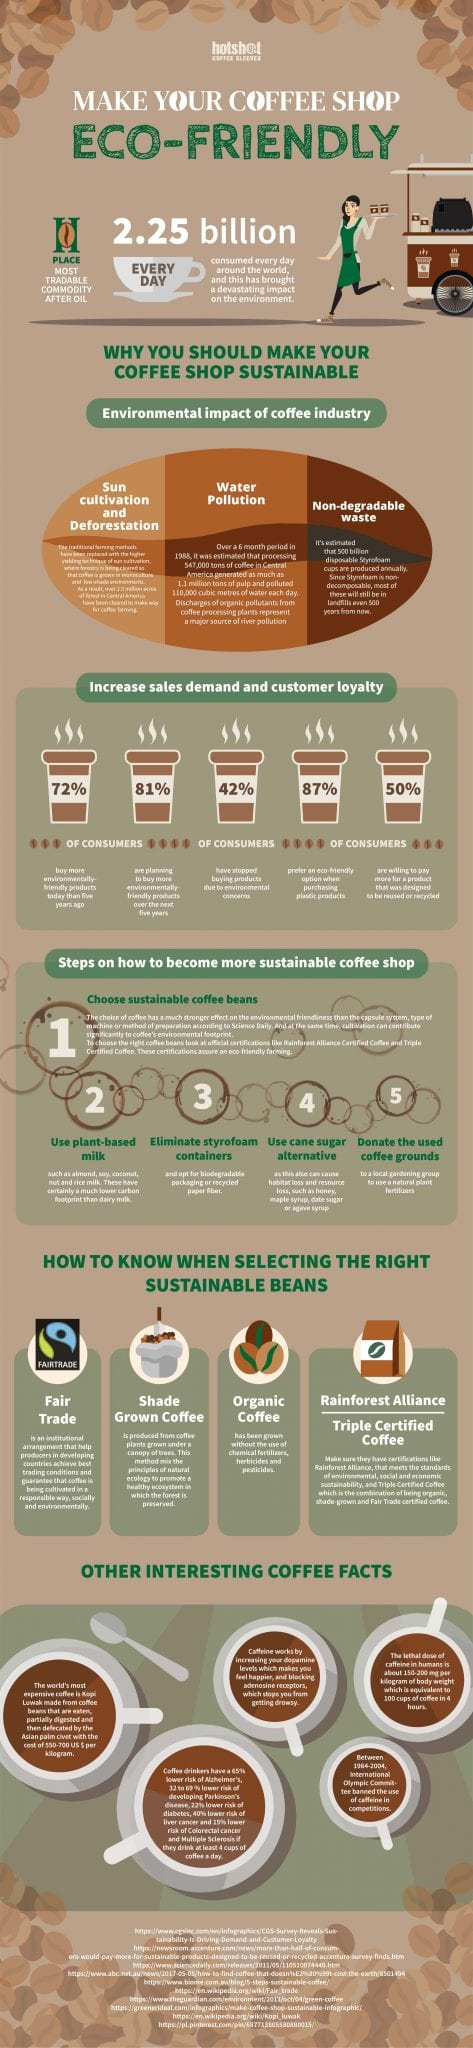 make your coffee shop eco friendly and sustainable infographic